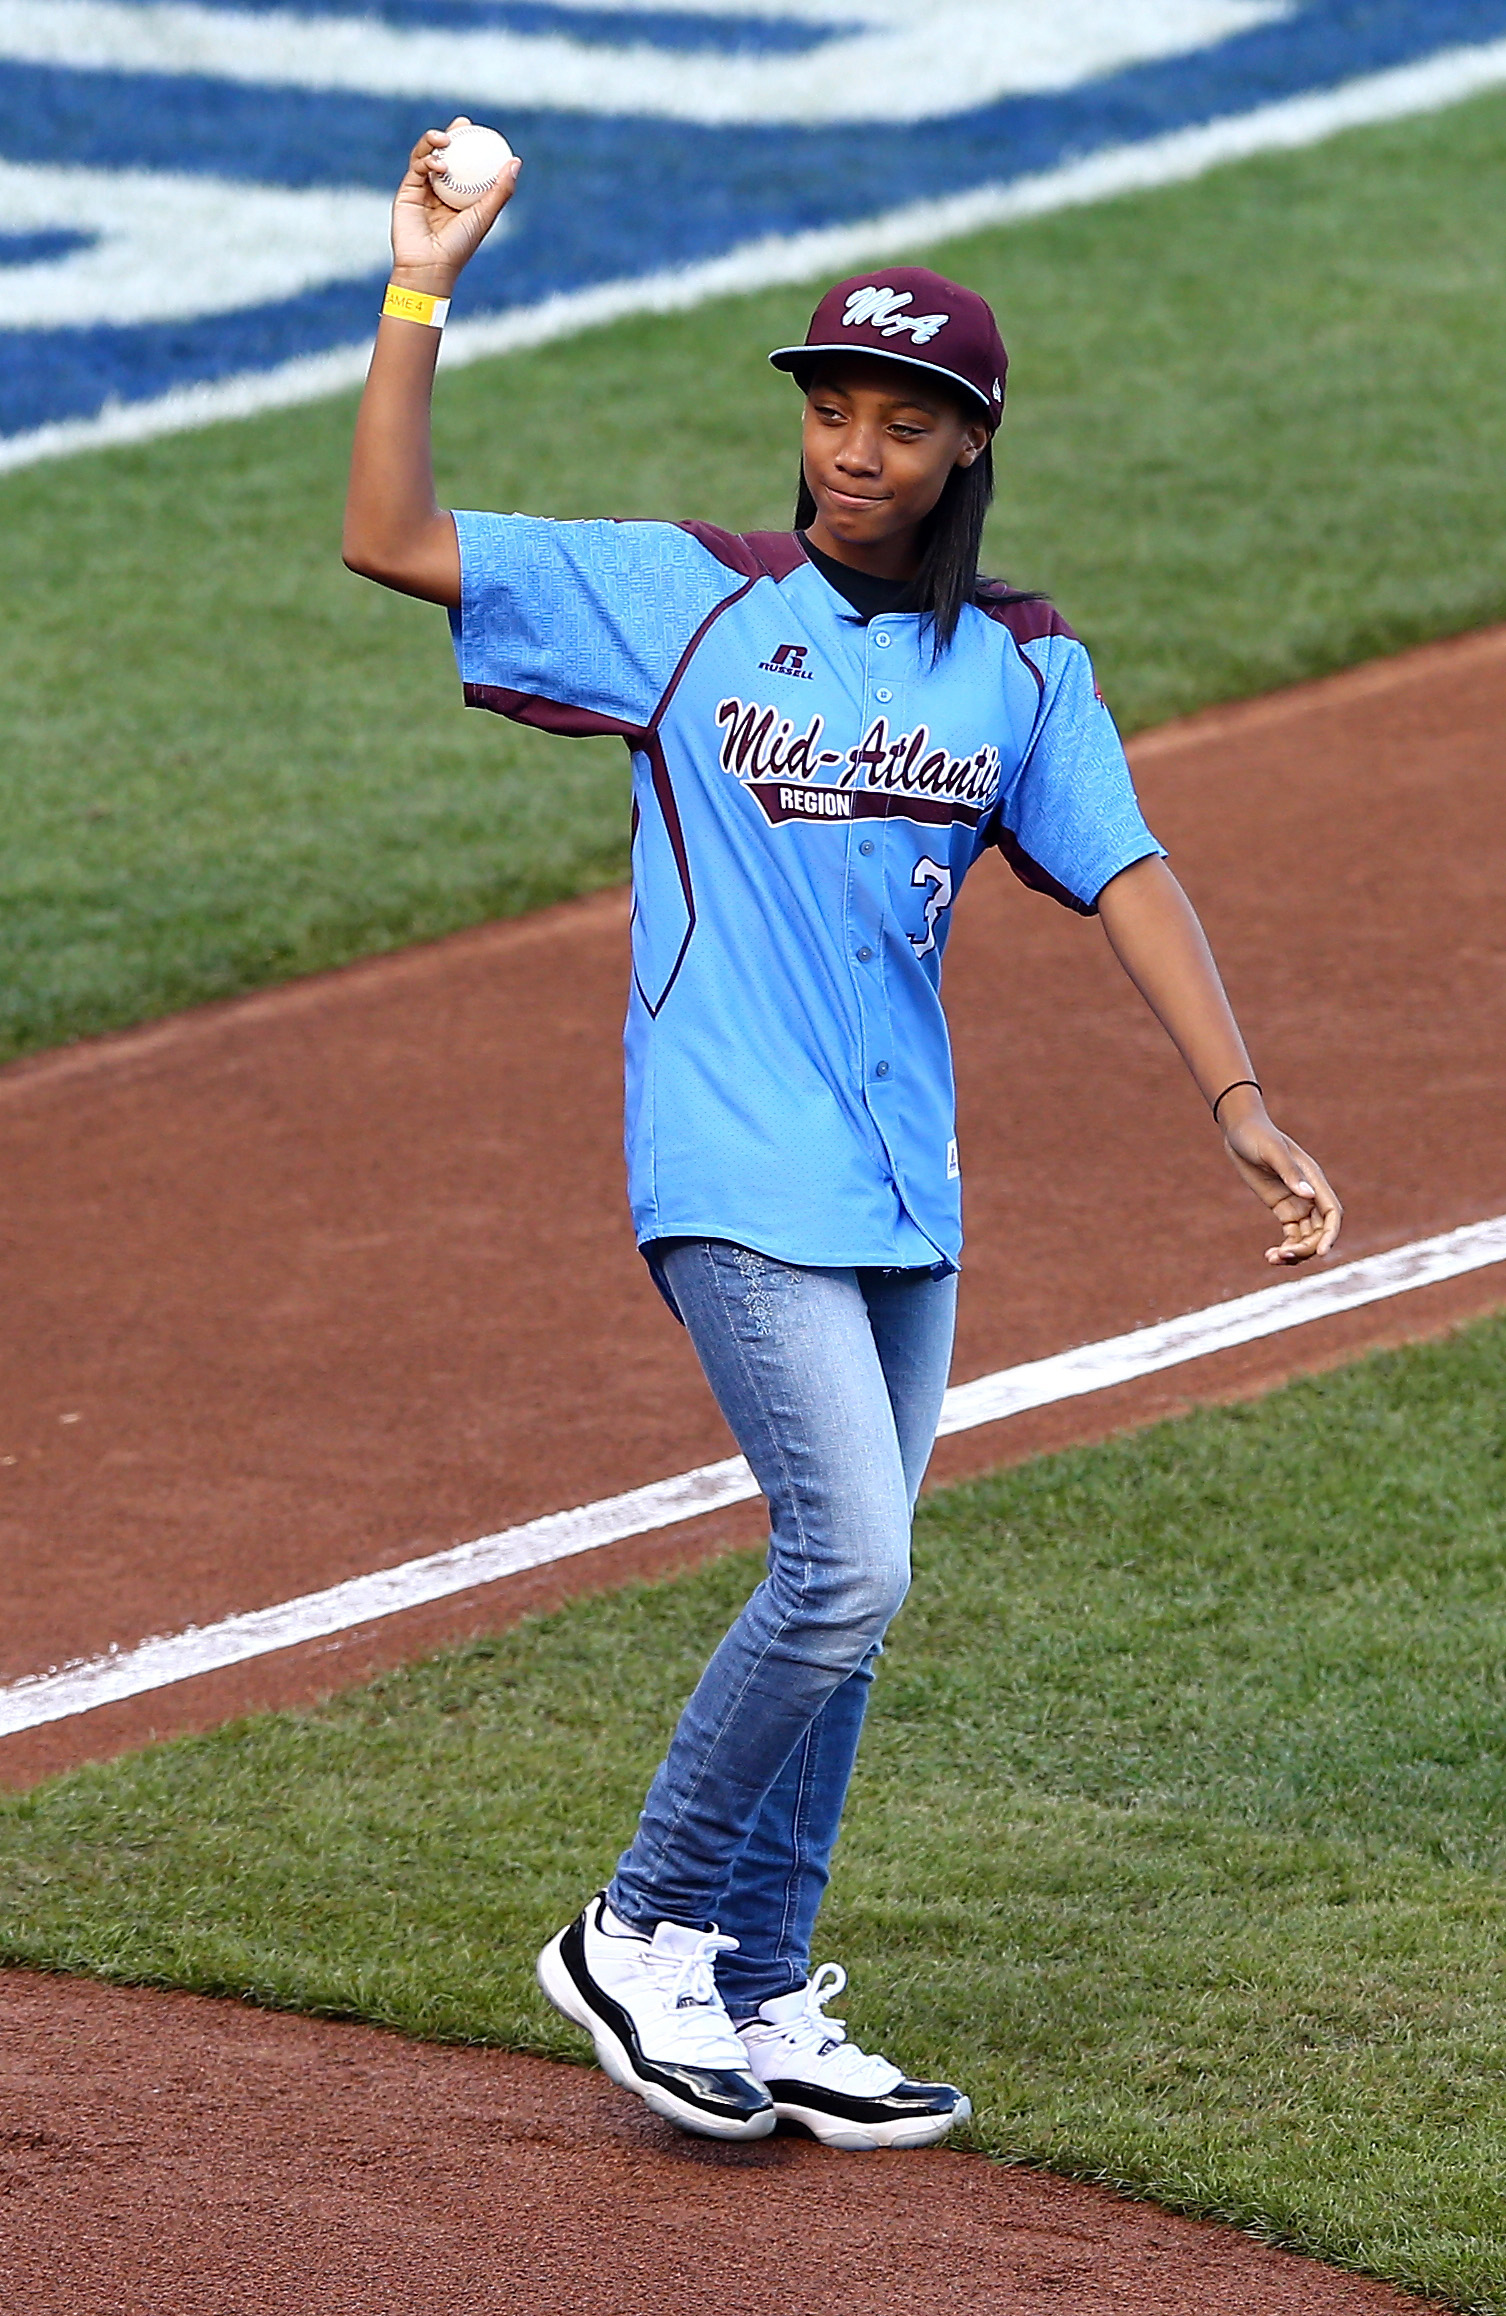 Little League Baseball pitcher Mo'ne Davis waves after she throws out the ceremonial first pitch before Game Four of the 2014 World Series at AT&T Park on October 25, 2014 in San Francisco, California.